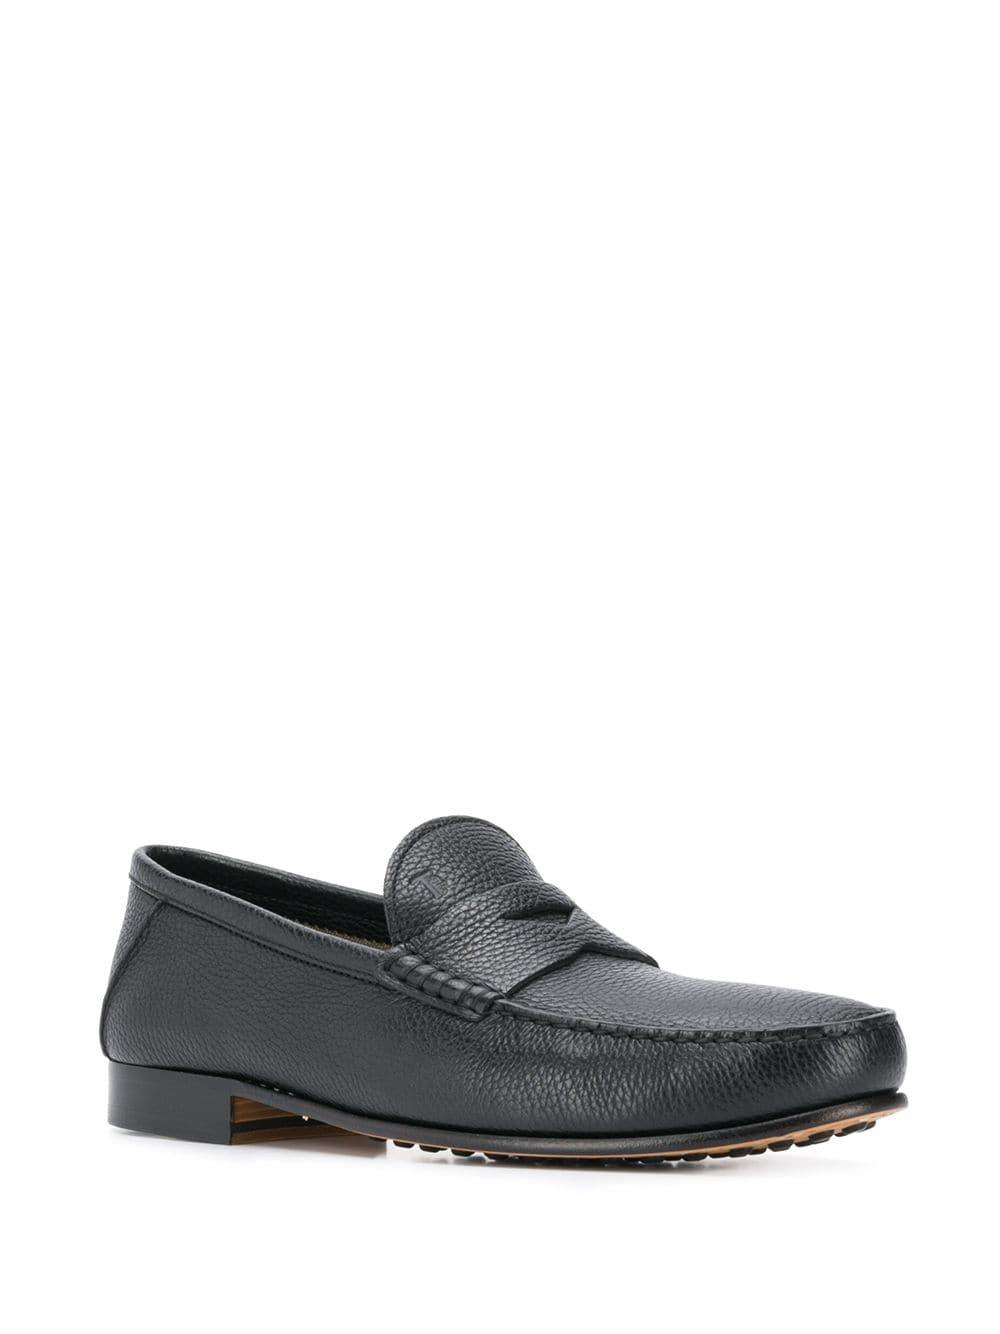 97885b227ef Lyst - Tod s Cracked Effect Penny Loafers in Black for Men